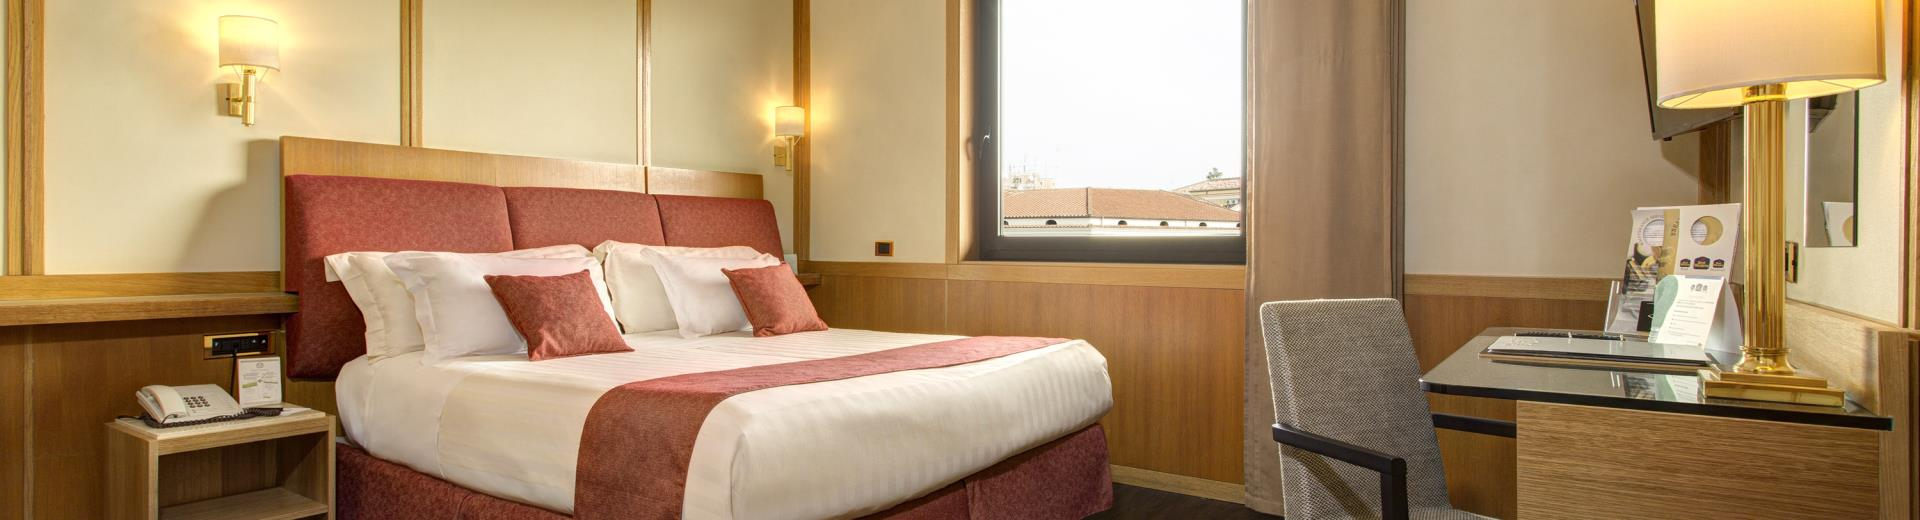 Double Comfort room-Hotel President Rome 4 star hotel